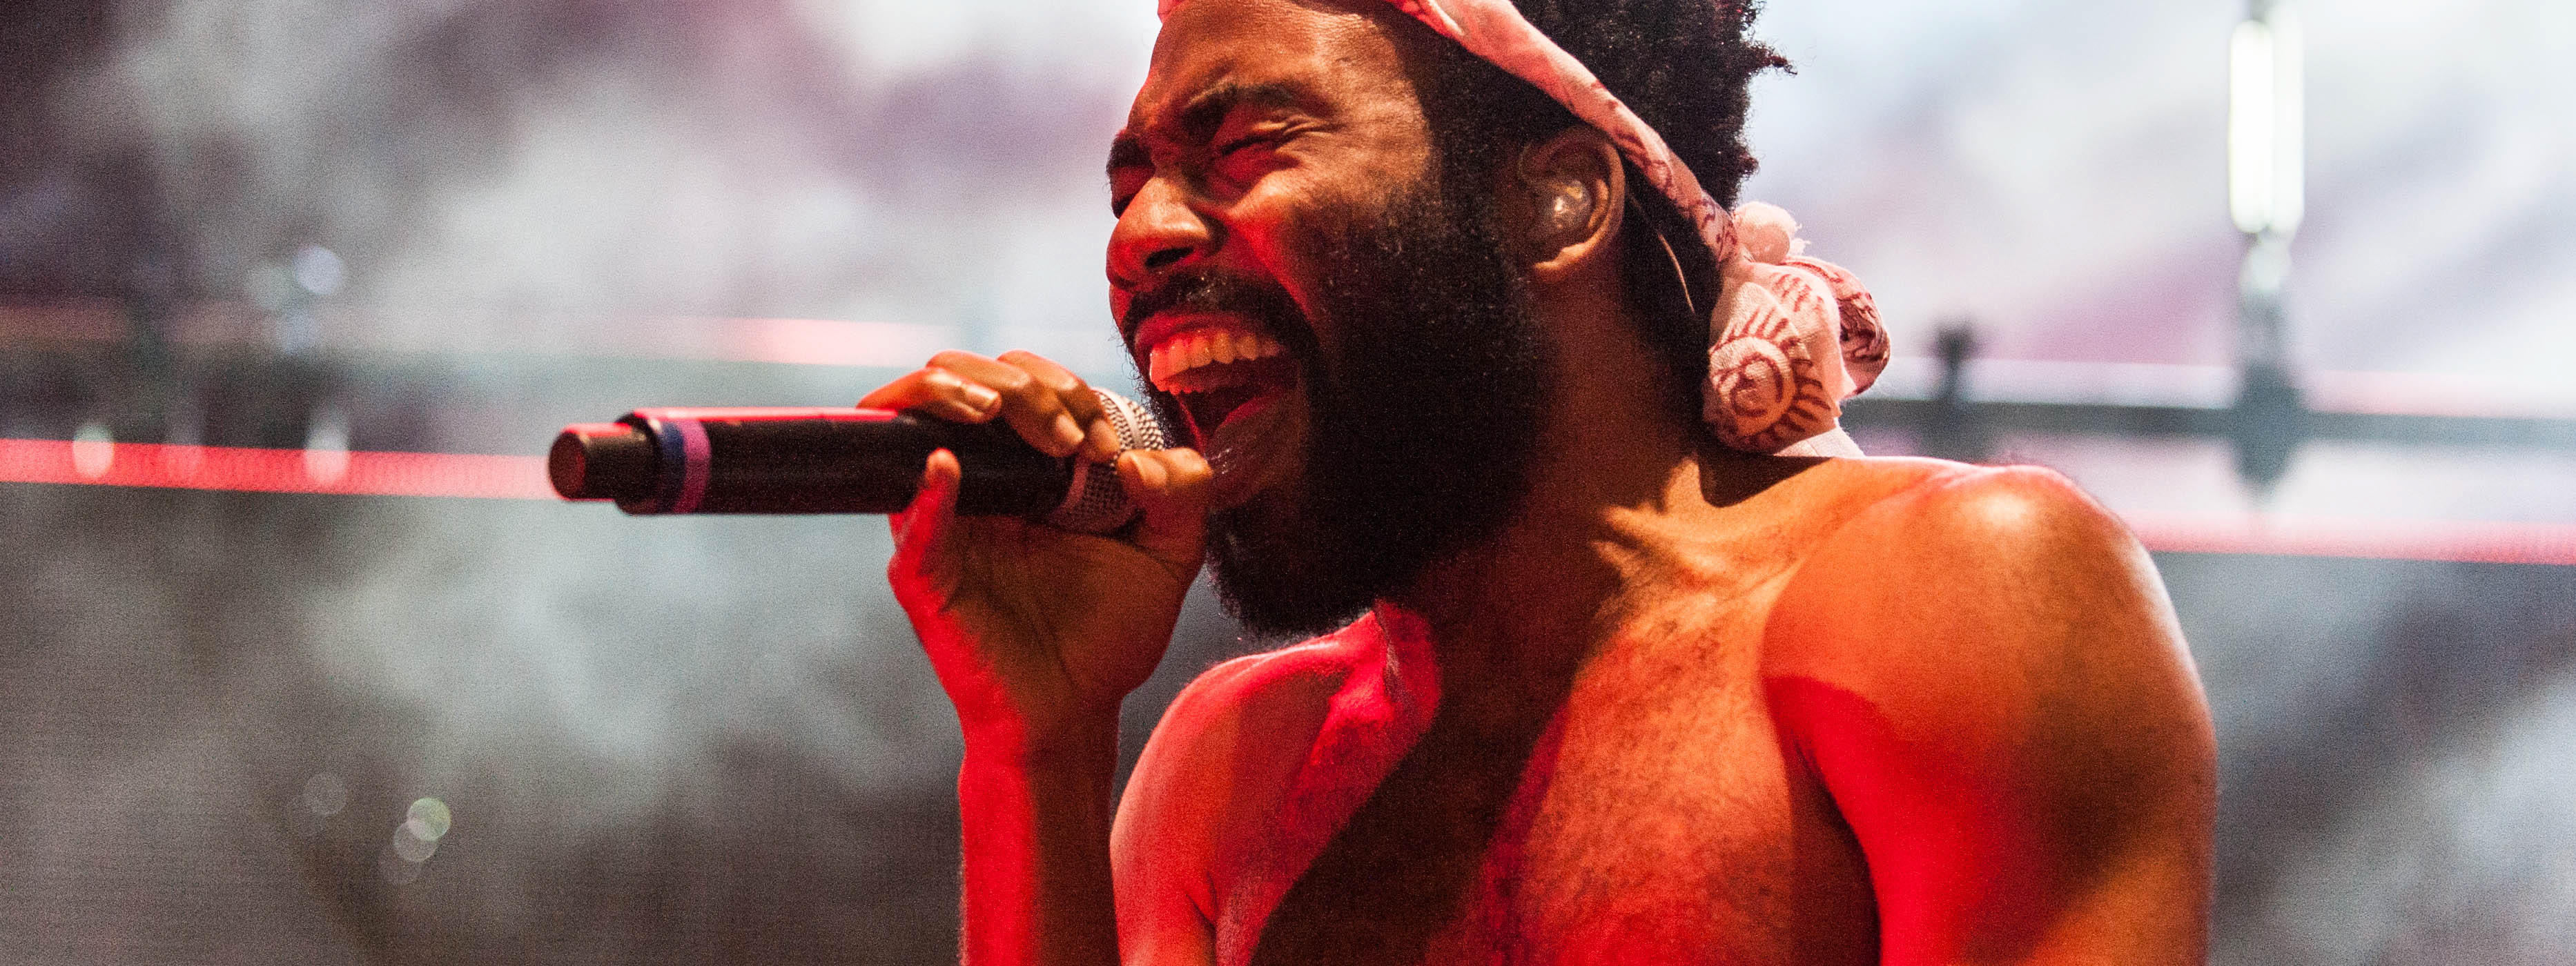 listen-out-Childish-Gambino-kate-griffin-64542